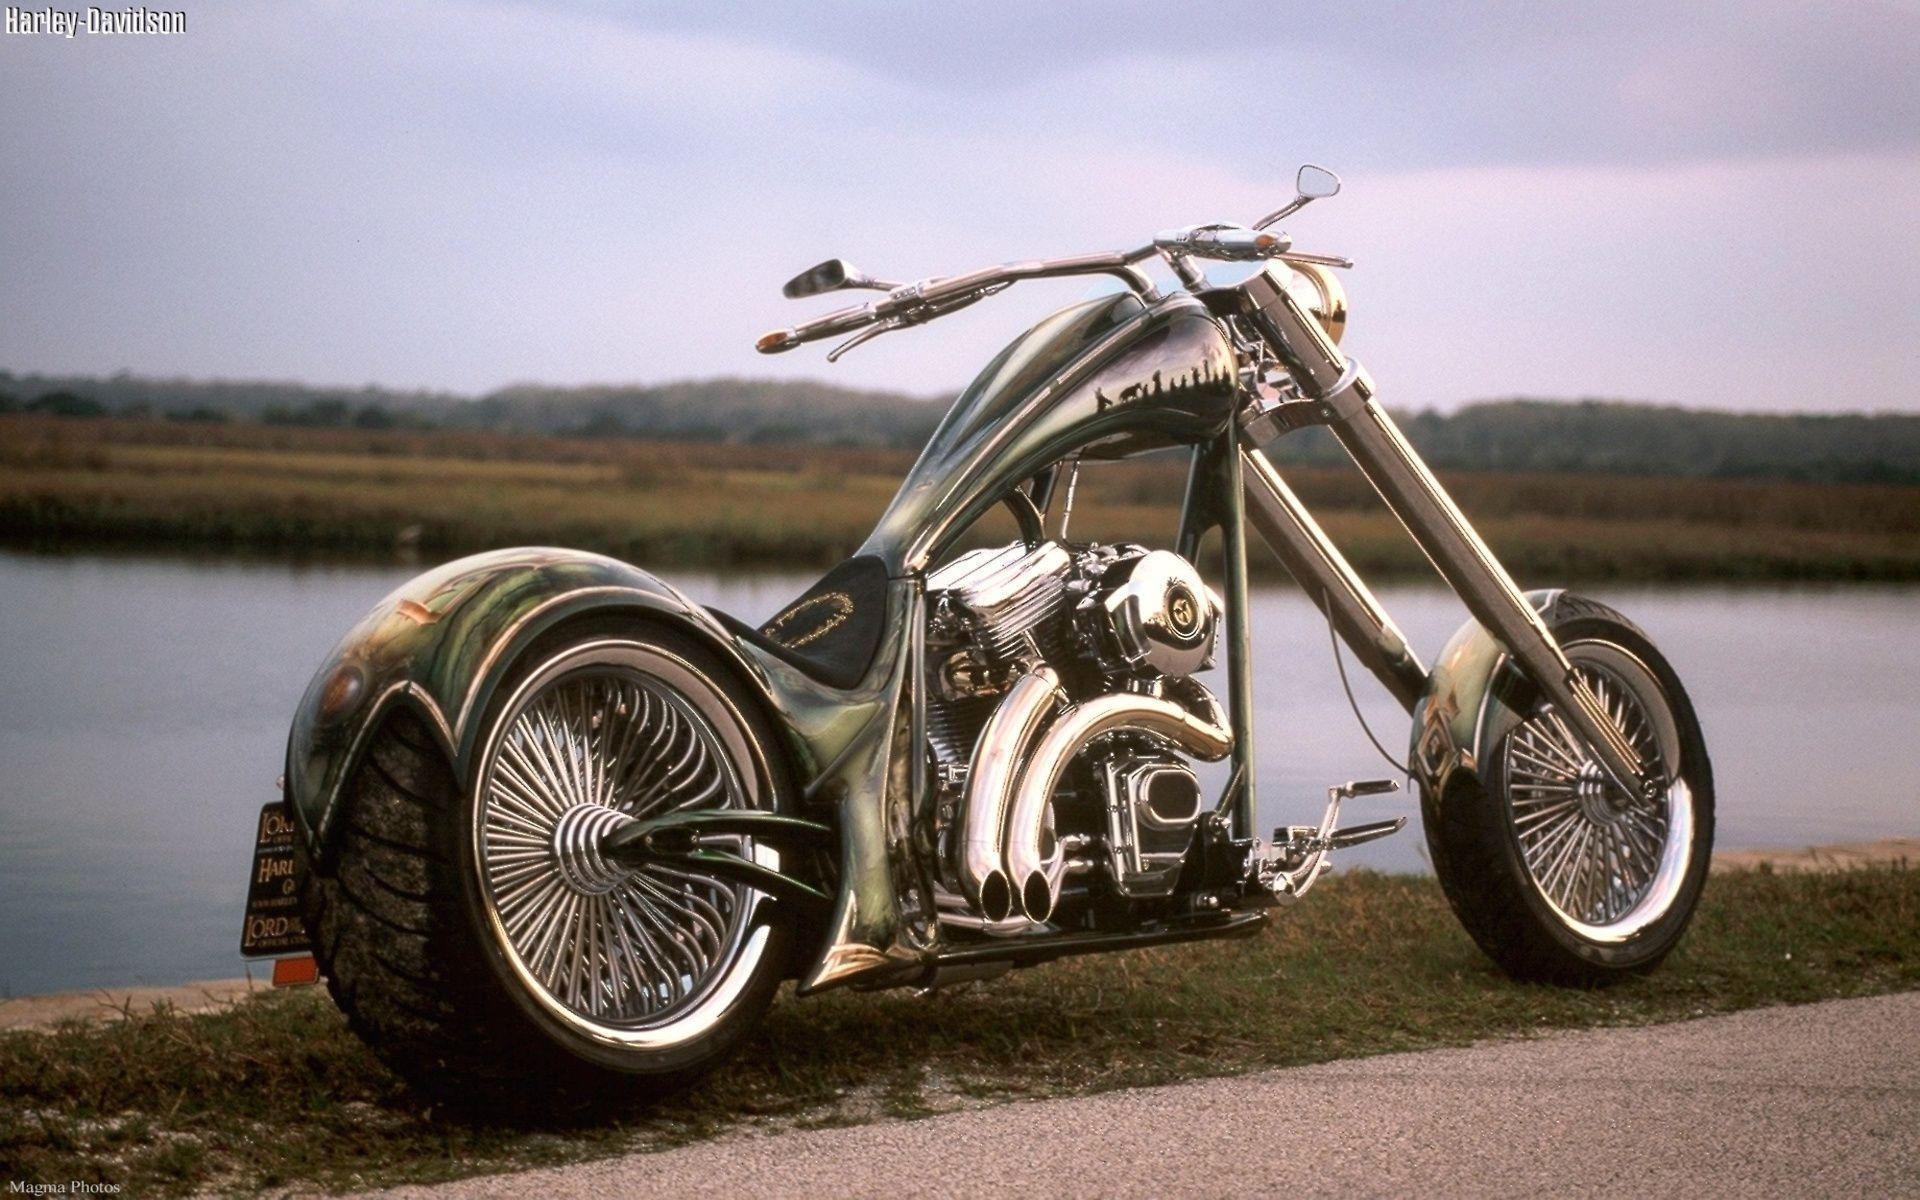 Harley Davidson Wallpapers | HD Wallpapers Early